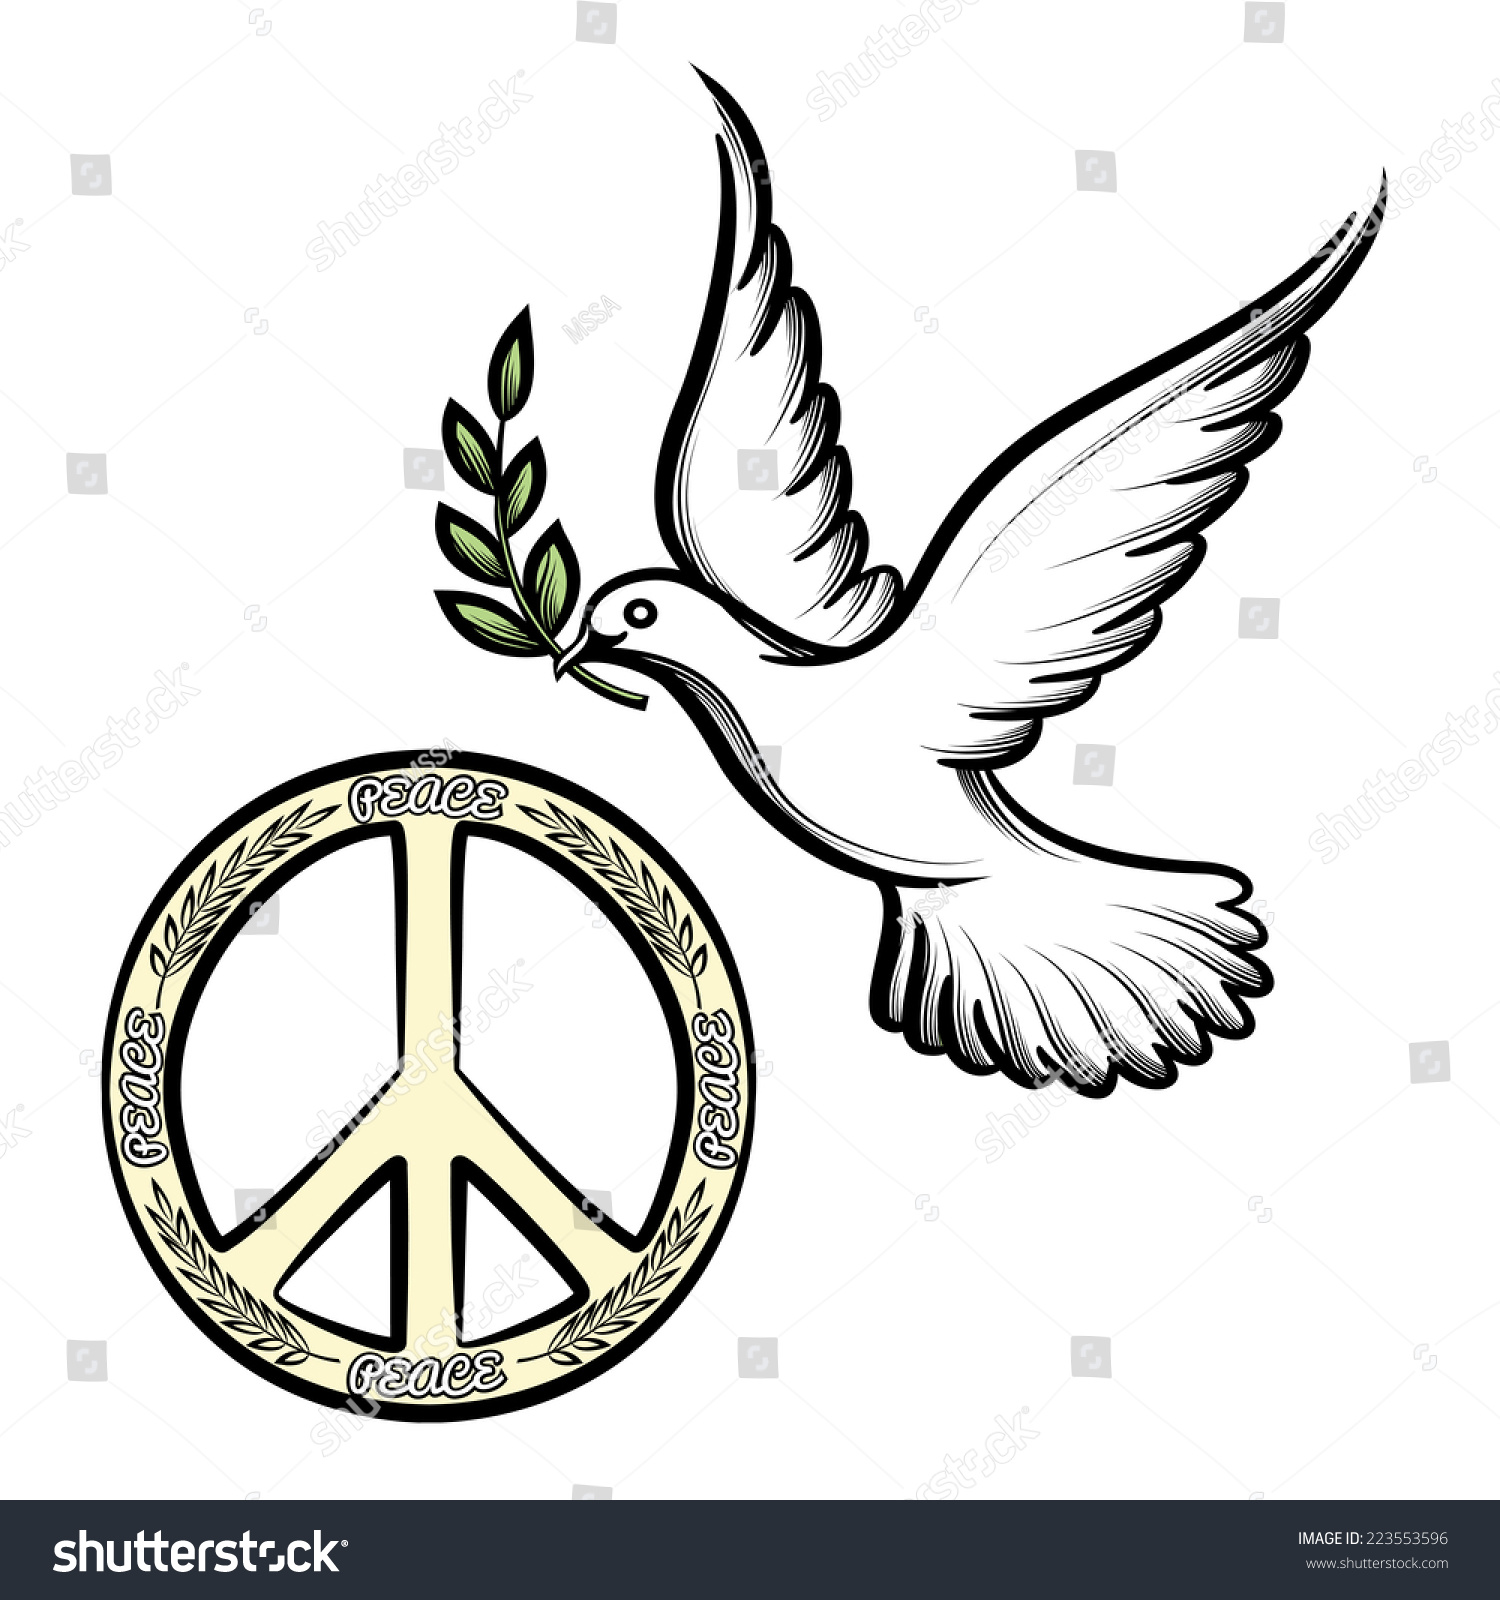 Pacific antiwar symbol nuclear disarmament now stock illustration pacific anti war symbol for nuclear disarmament now an international peace symbol and the dove biocorpaavc Images